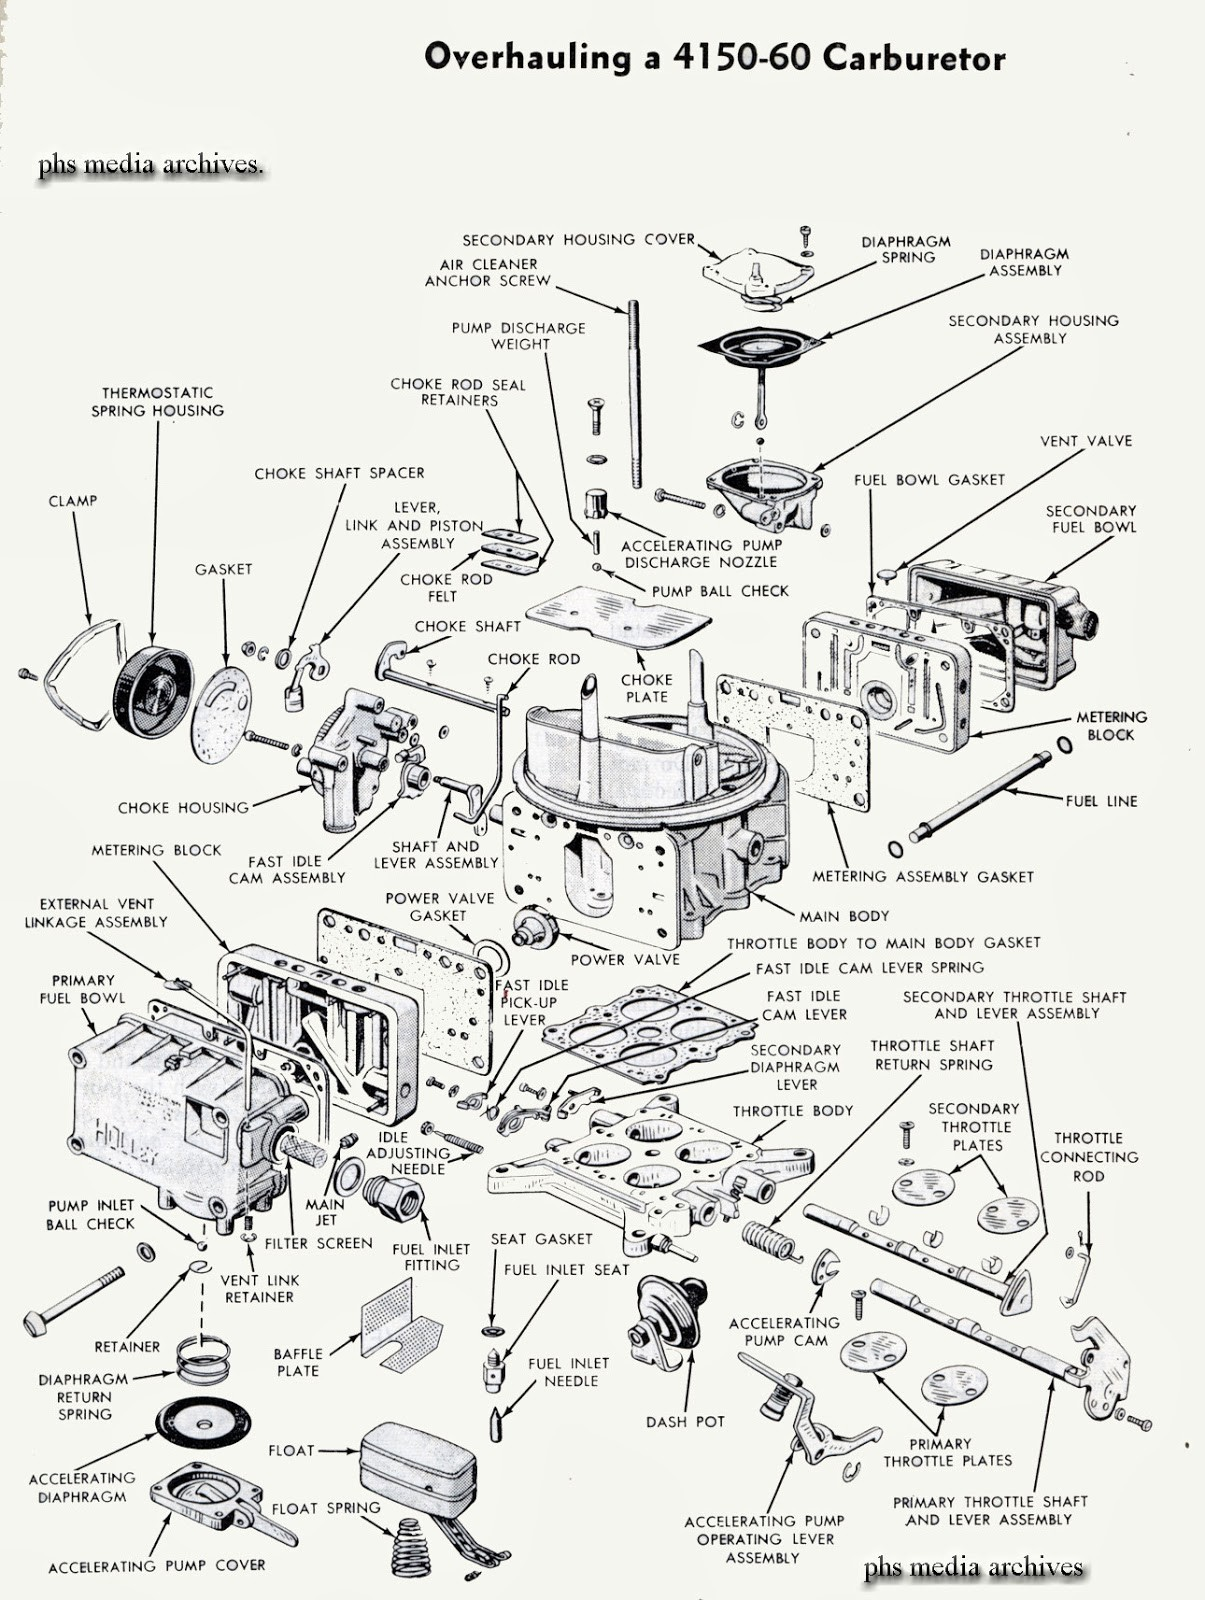 Holly Electric Choke Wire Diagram Na 8656] Terrain Also Holley Carb Vacuum Port Diagram Of Holly Electric Choke Wire Diagram